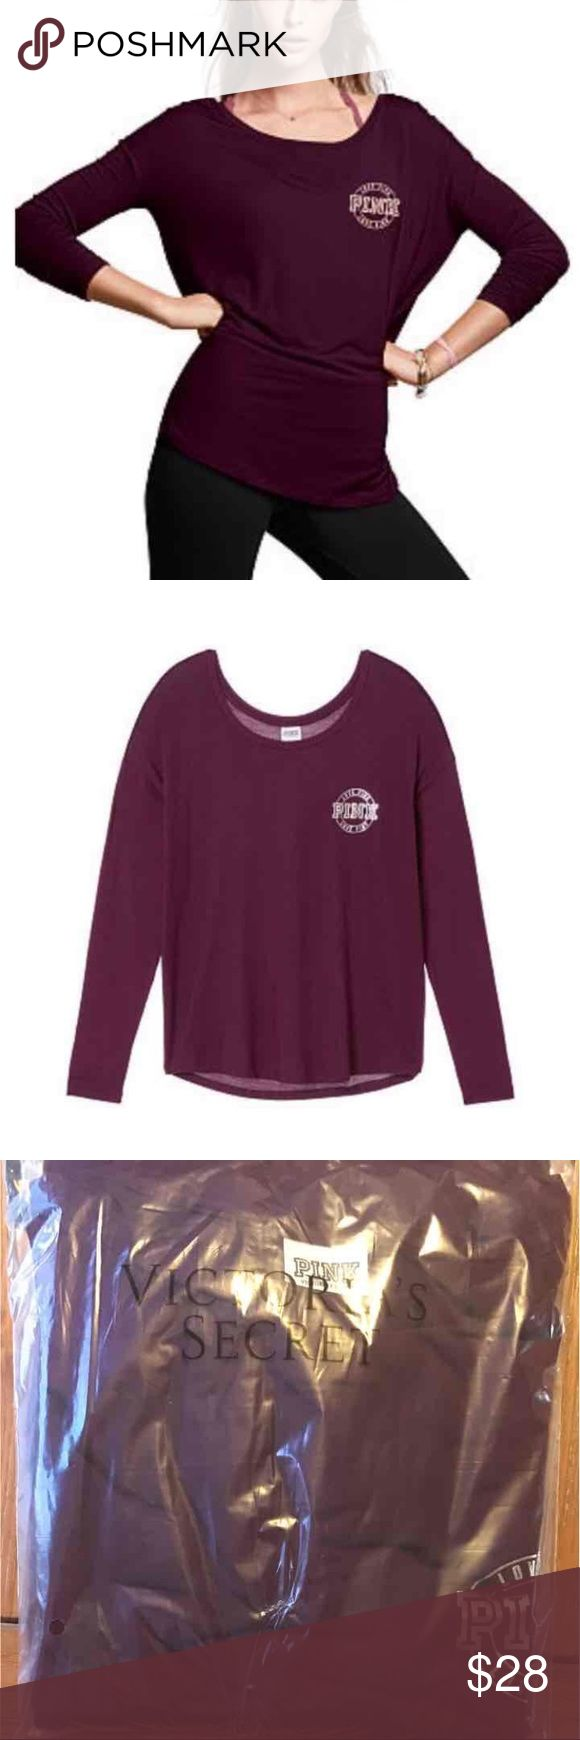 NEW Victoria's Secret Pink slouchy tee New in package   Victoria's Secret Pink super soft slouchy tee Color: black orchid maroon Size: medium (oversized fit) PINK Victoria's Secret Tops Tees - Long Sleeve